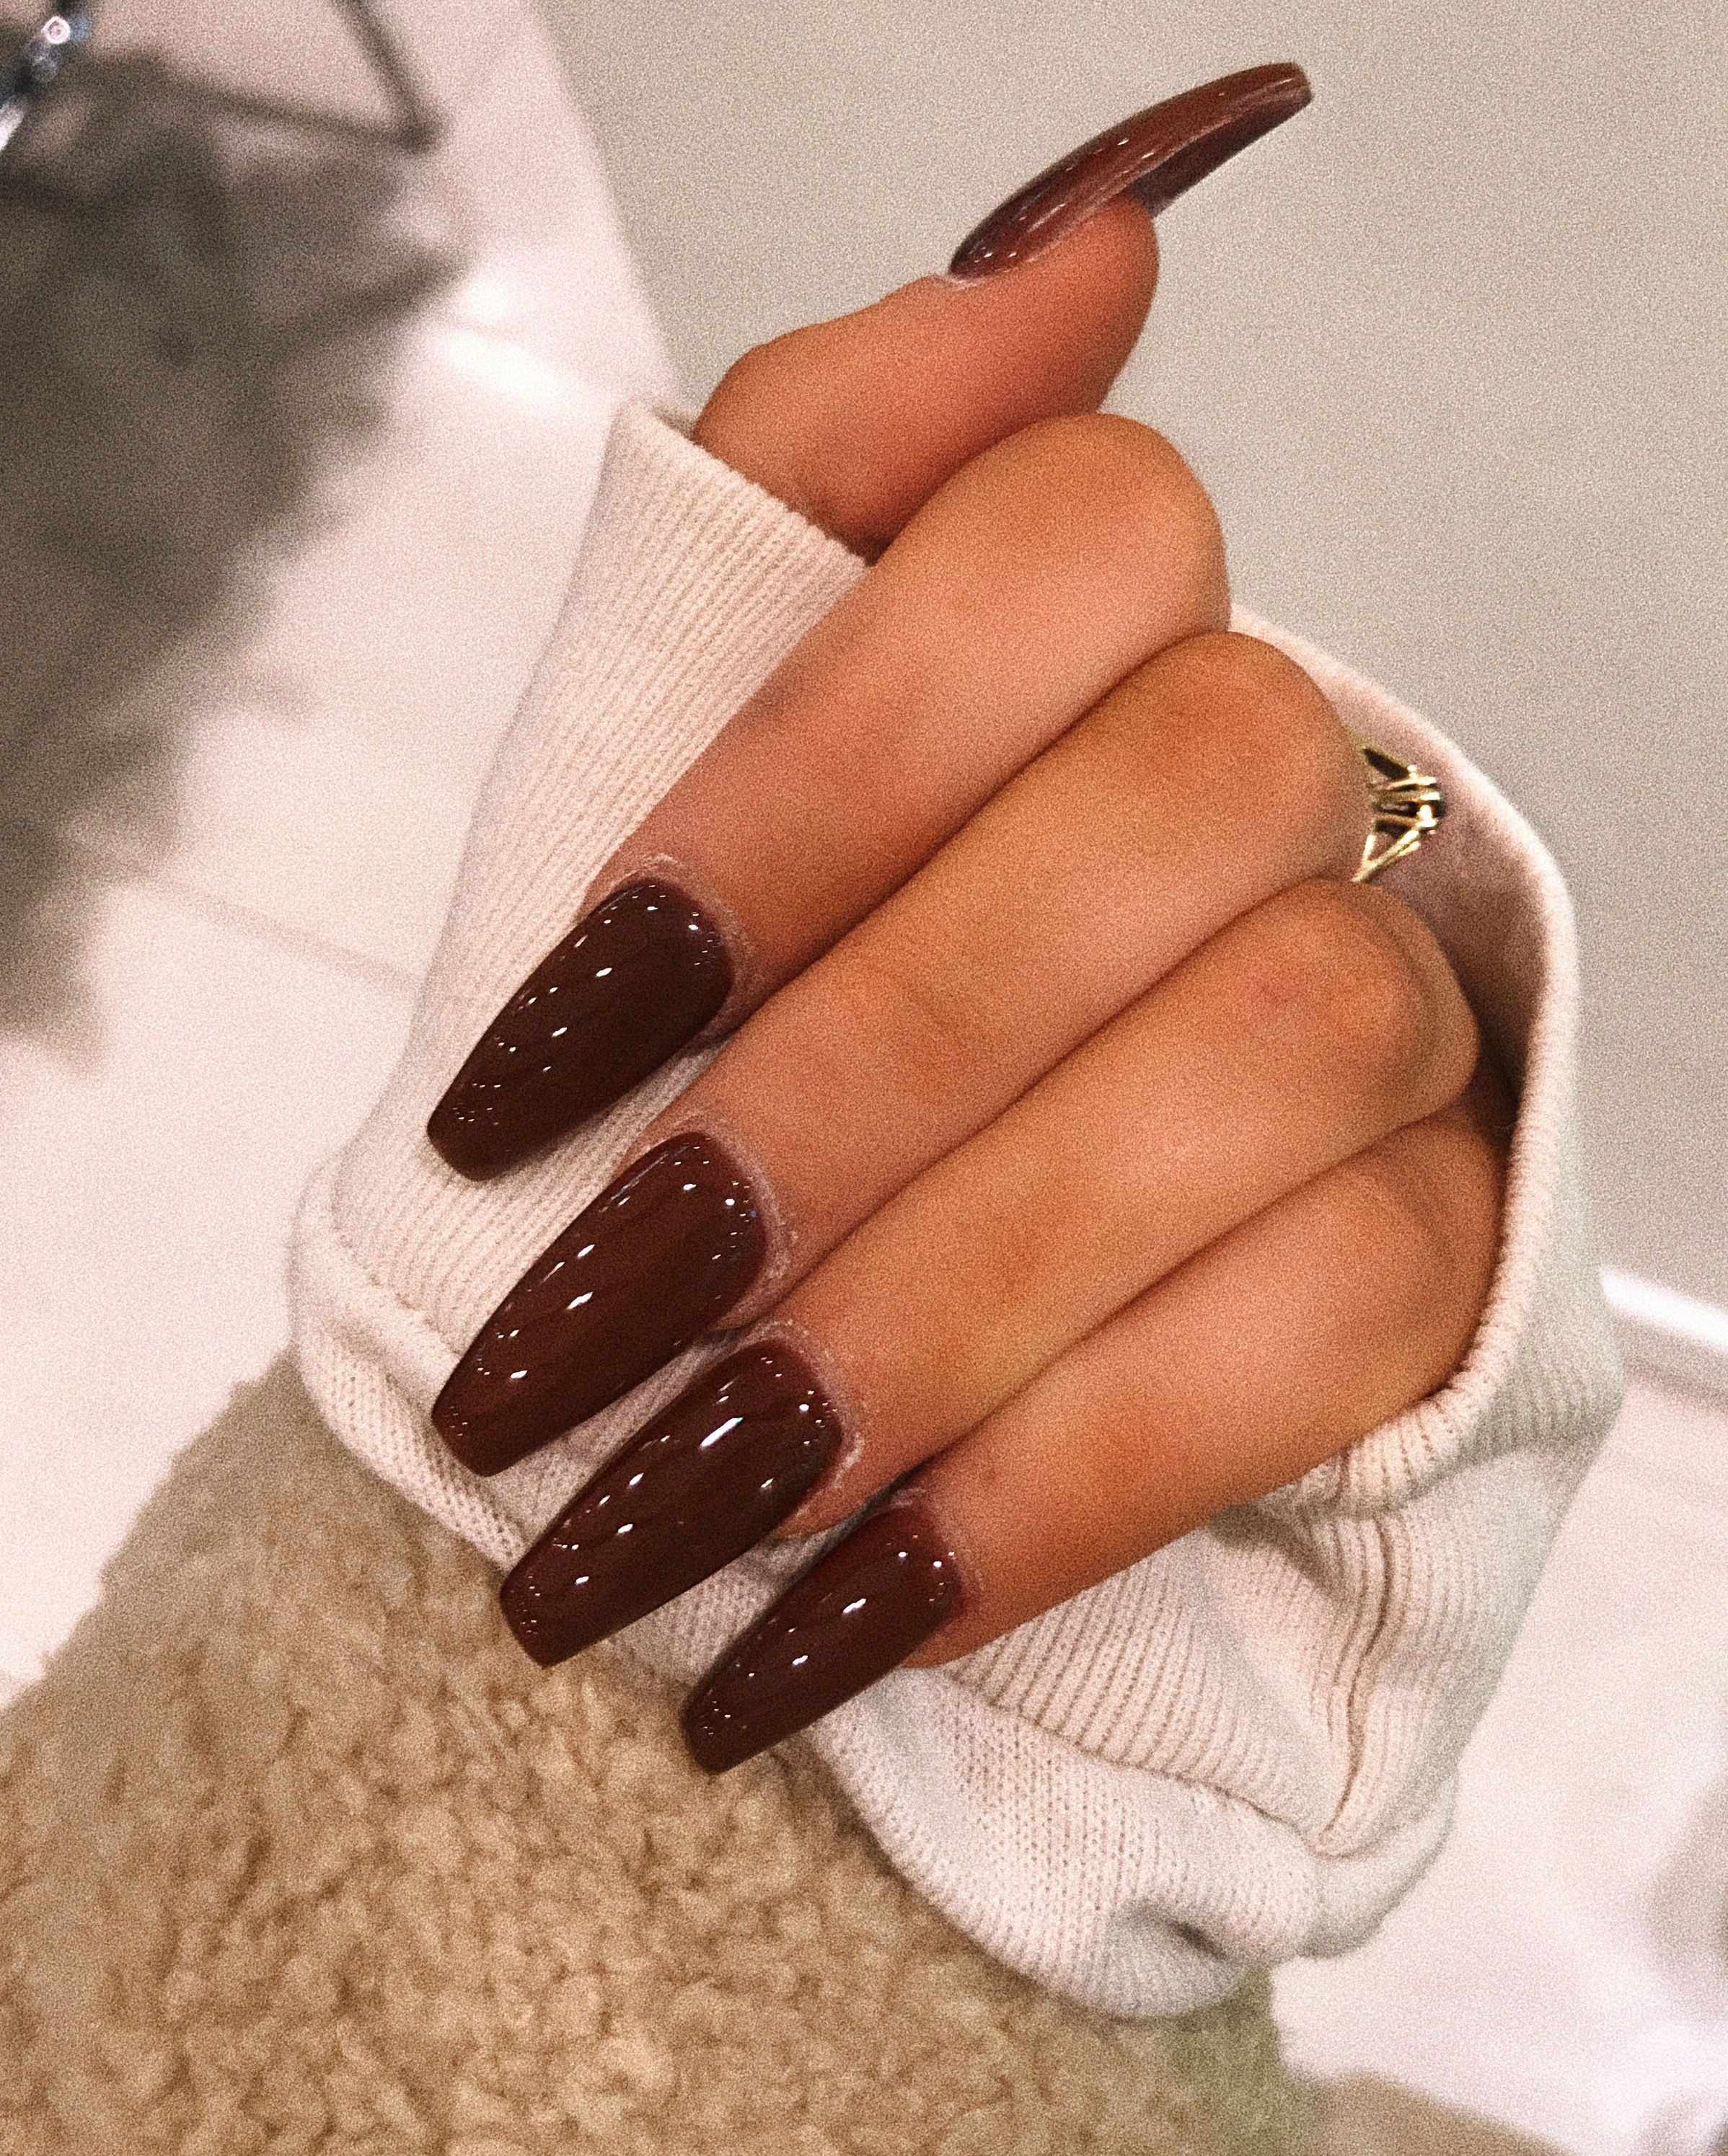 chocolate acrylics #nails #acrylicnails